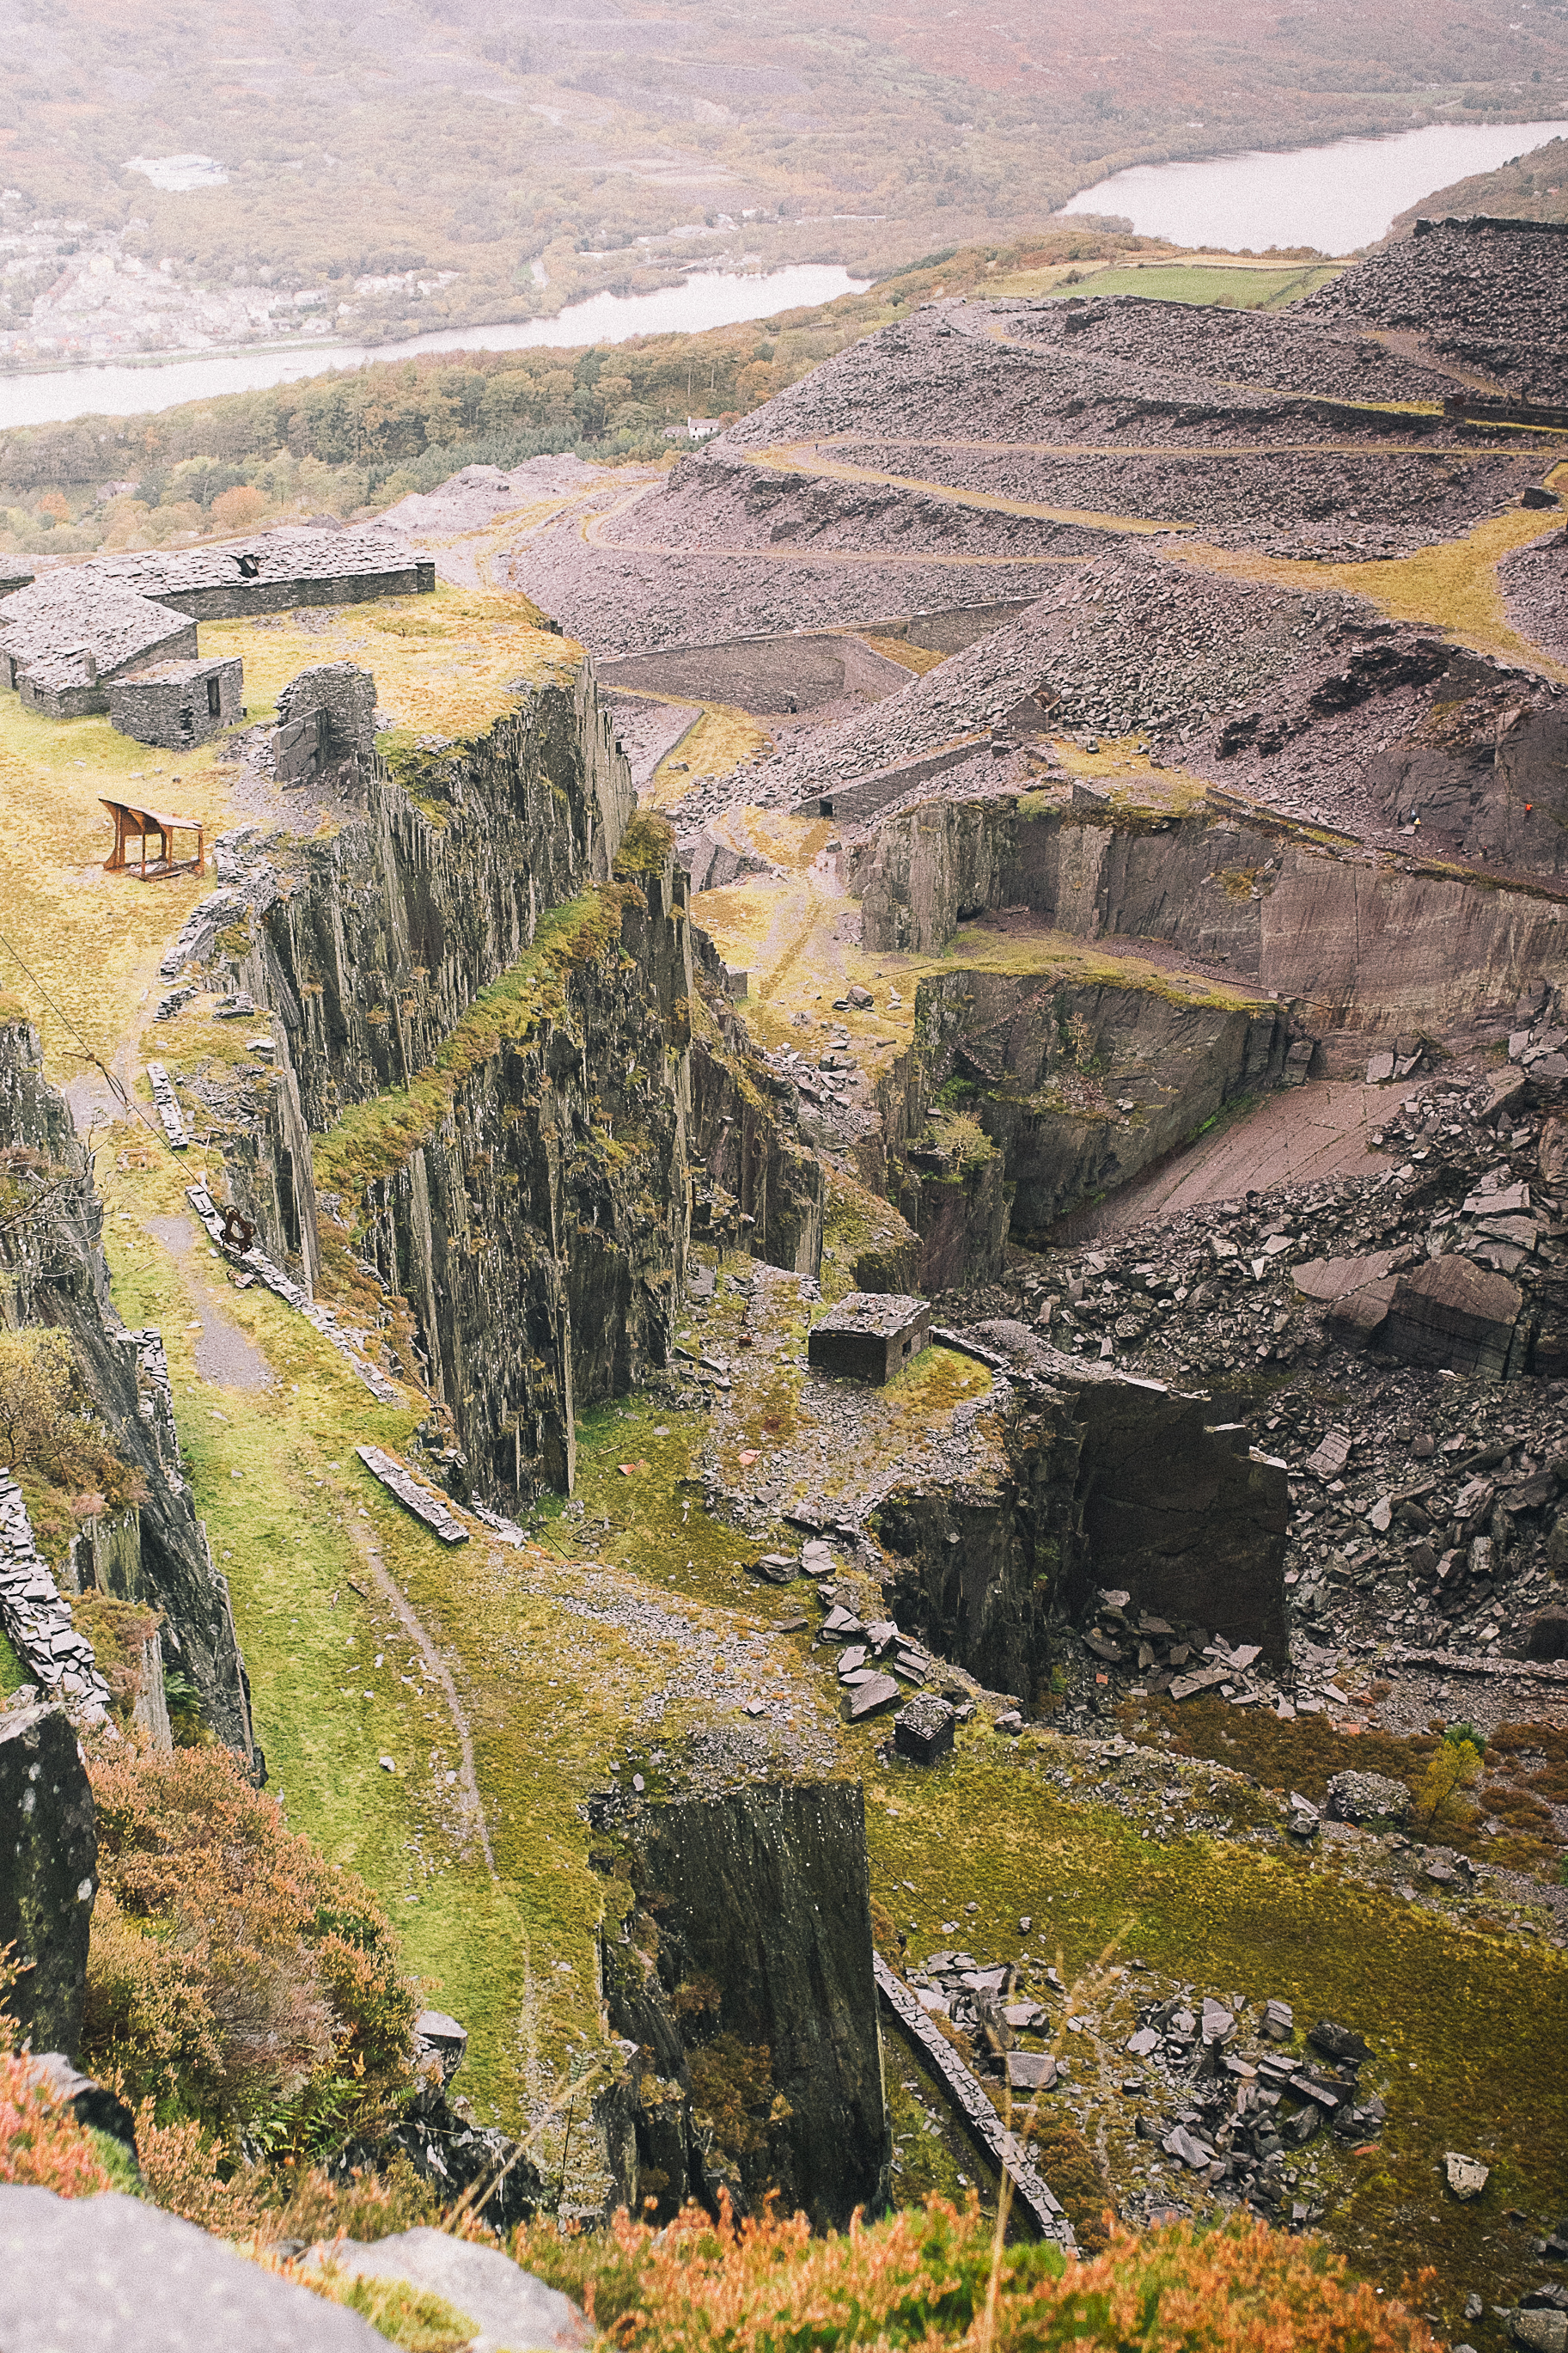 north_wales_dinorwic_slate_quarry_photos-1-18.jpg